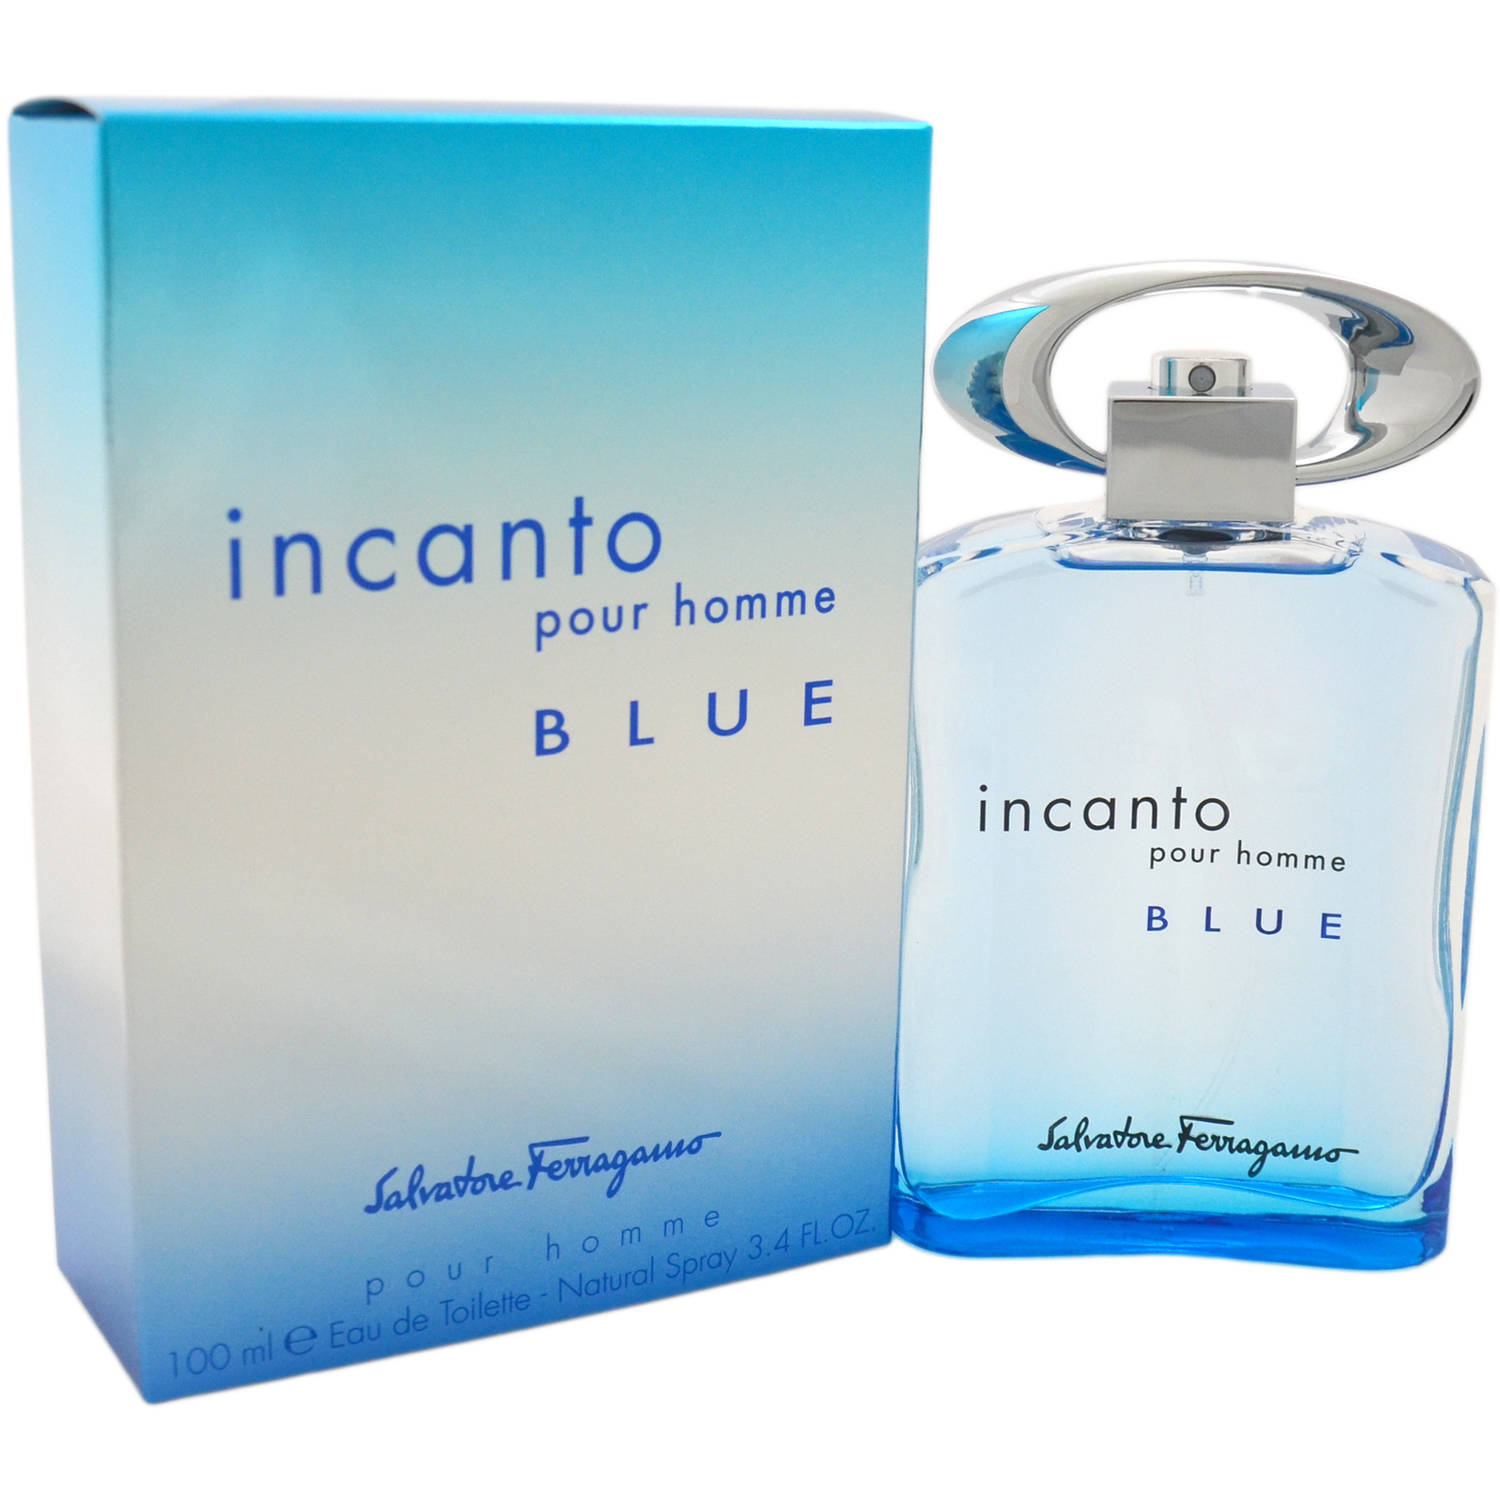 Salvatore Ferragamo Incanto Blue Eau de Toilette Natural Spray for Men, 3.4 fl oz